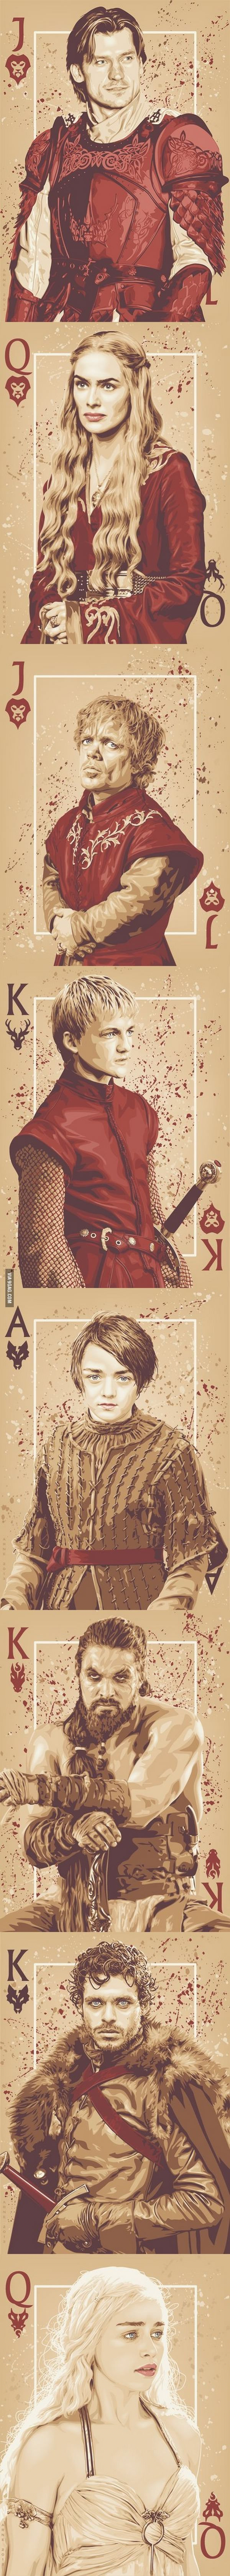 """3qwtezvdthsrh Cards """"Games Of Thrones"""""""